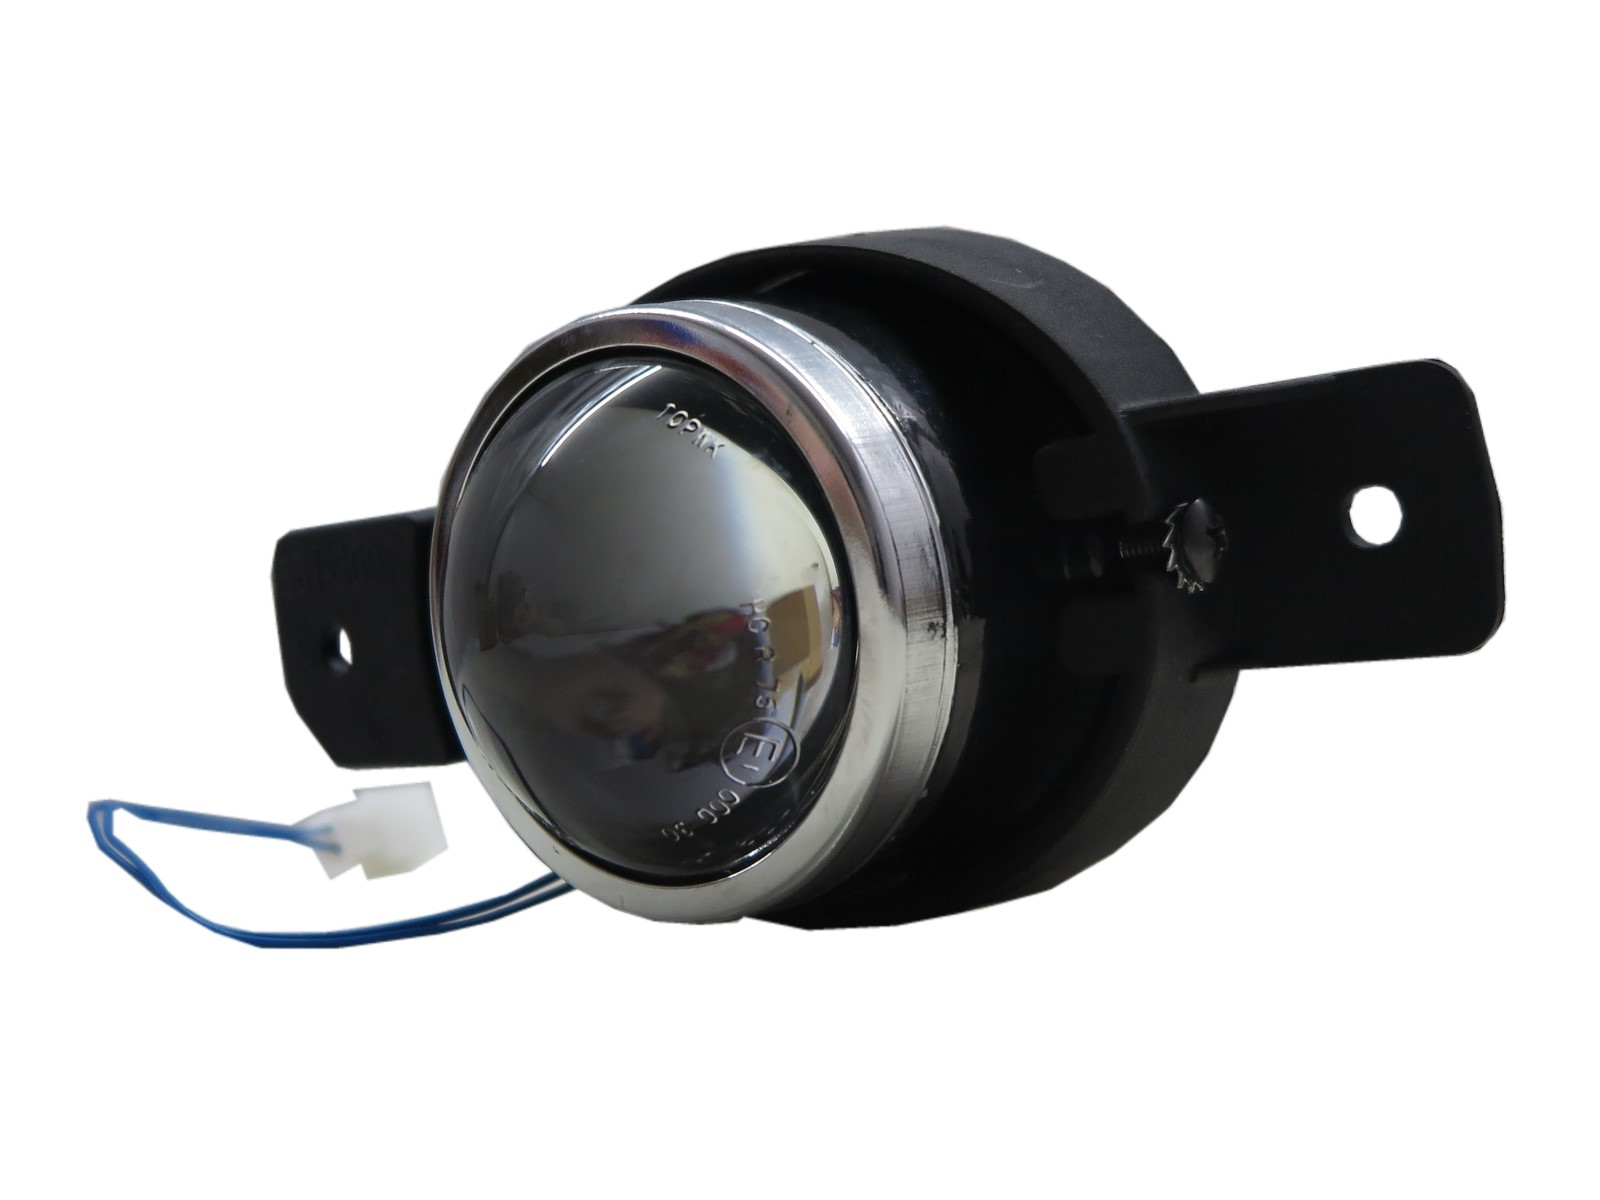 thumbnail 2 - NV400 2010-Present VAN 2D Projector Dual Beam Fog Light Black for NISSAN